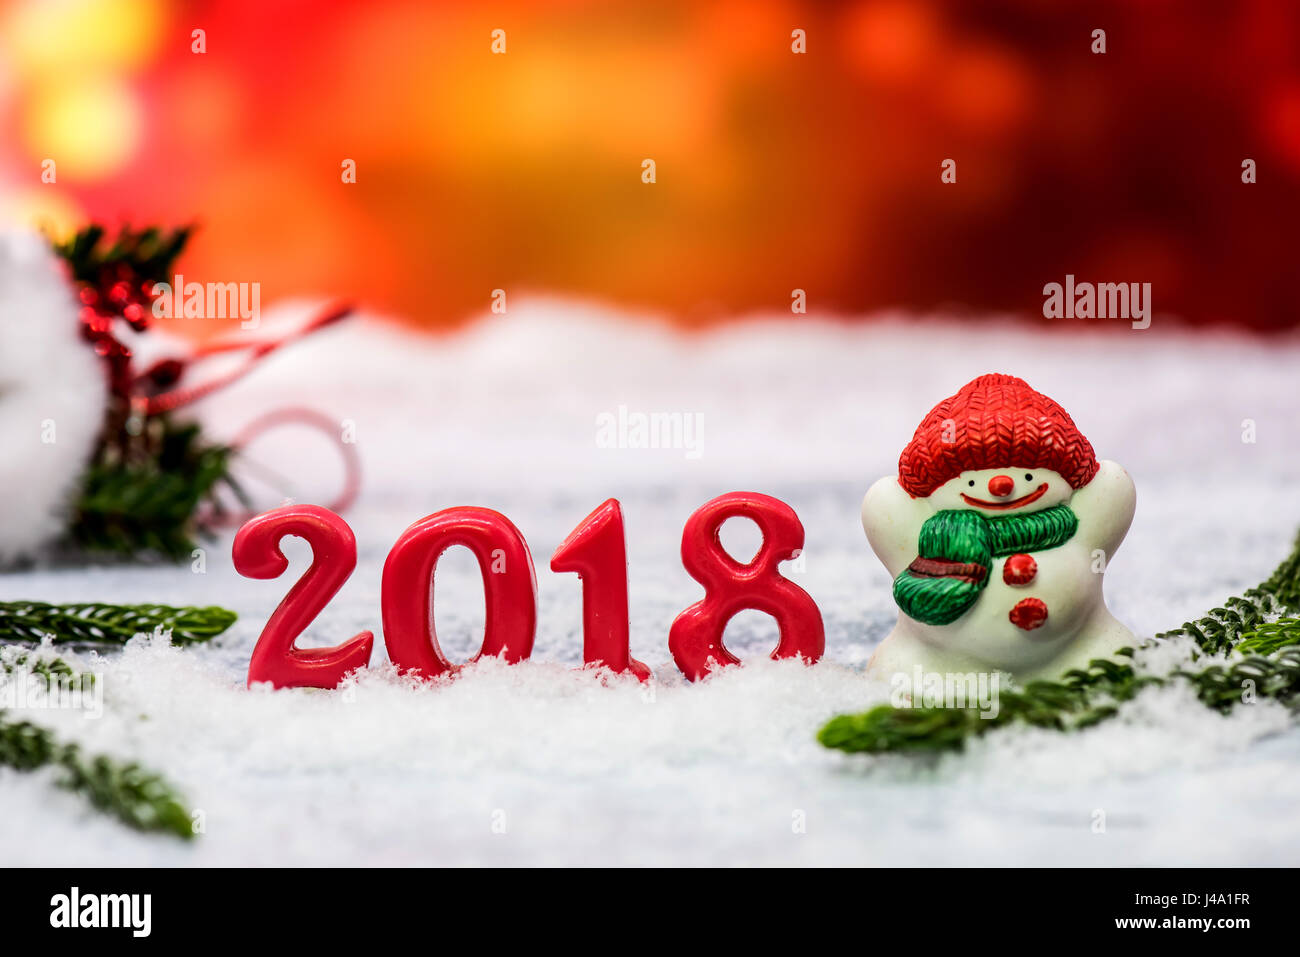 2018 Happy New Year decoration on snow Stock Photo, Royalty Free ...